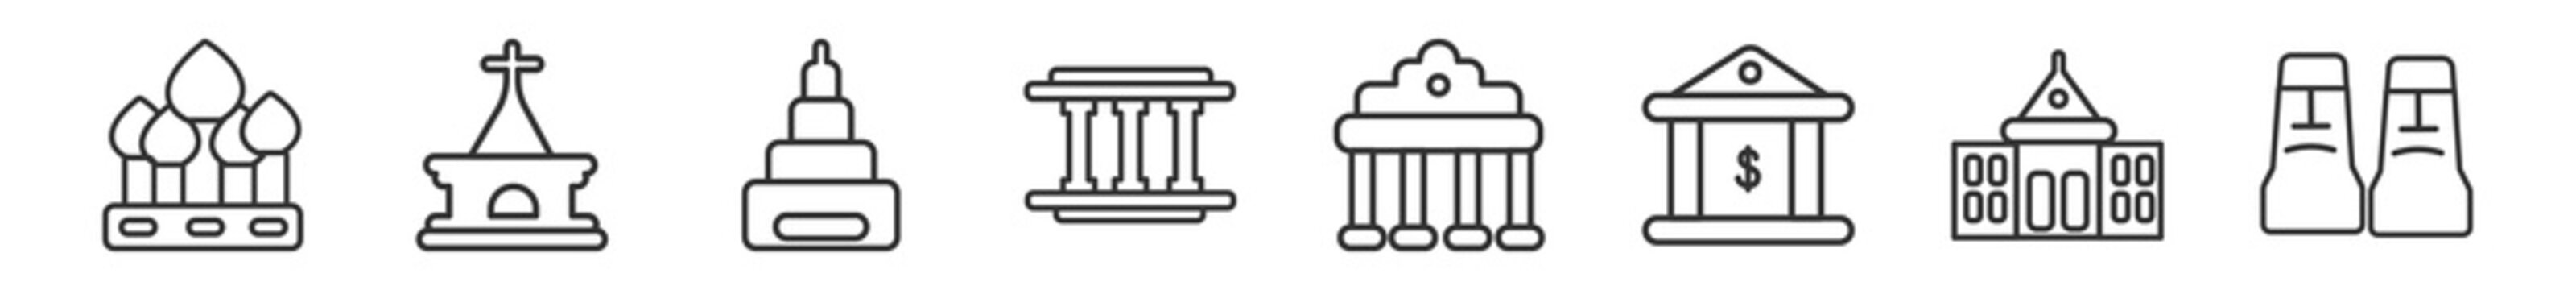 outline set of buildings line icons. linear vector icons such as cathedral of saint basil, chuch, buddist cemetery, lincoln memorial, brandenburg gate, rapa nui. vector illustration.